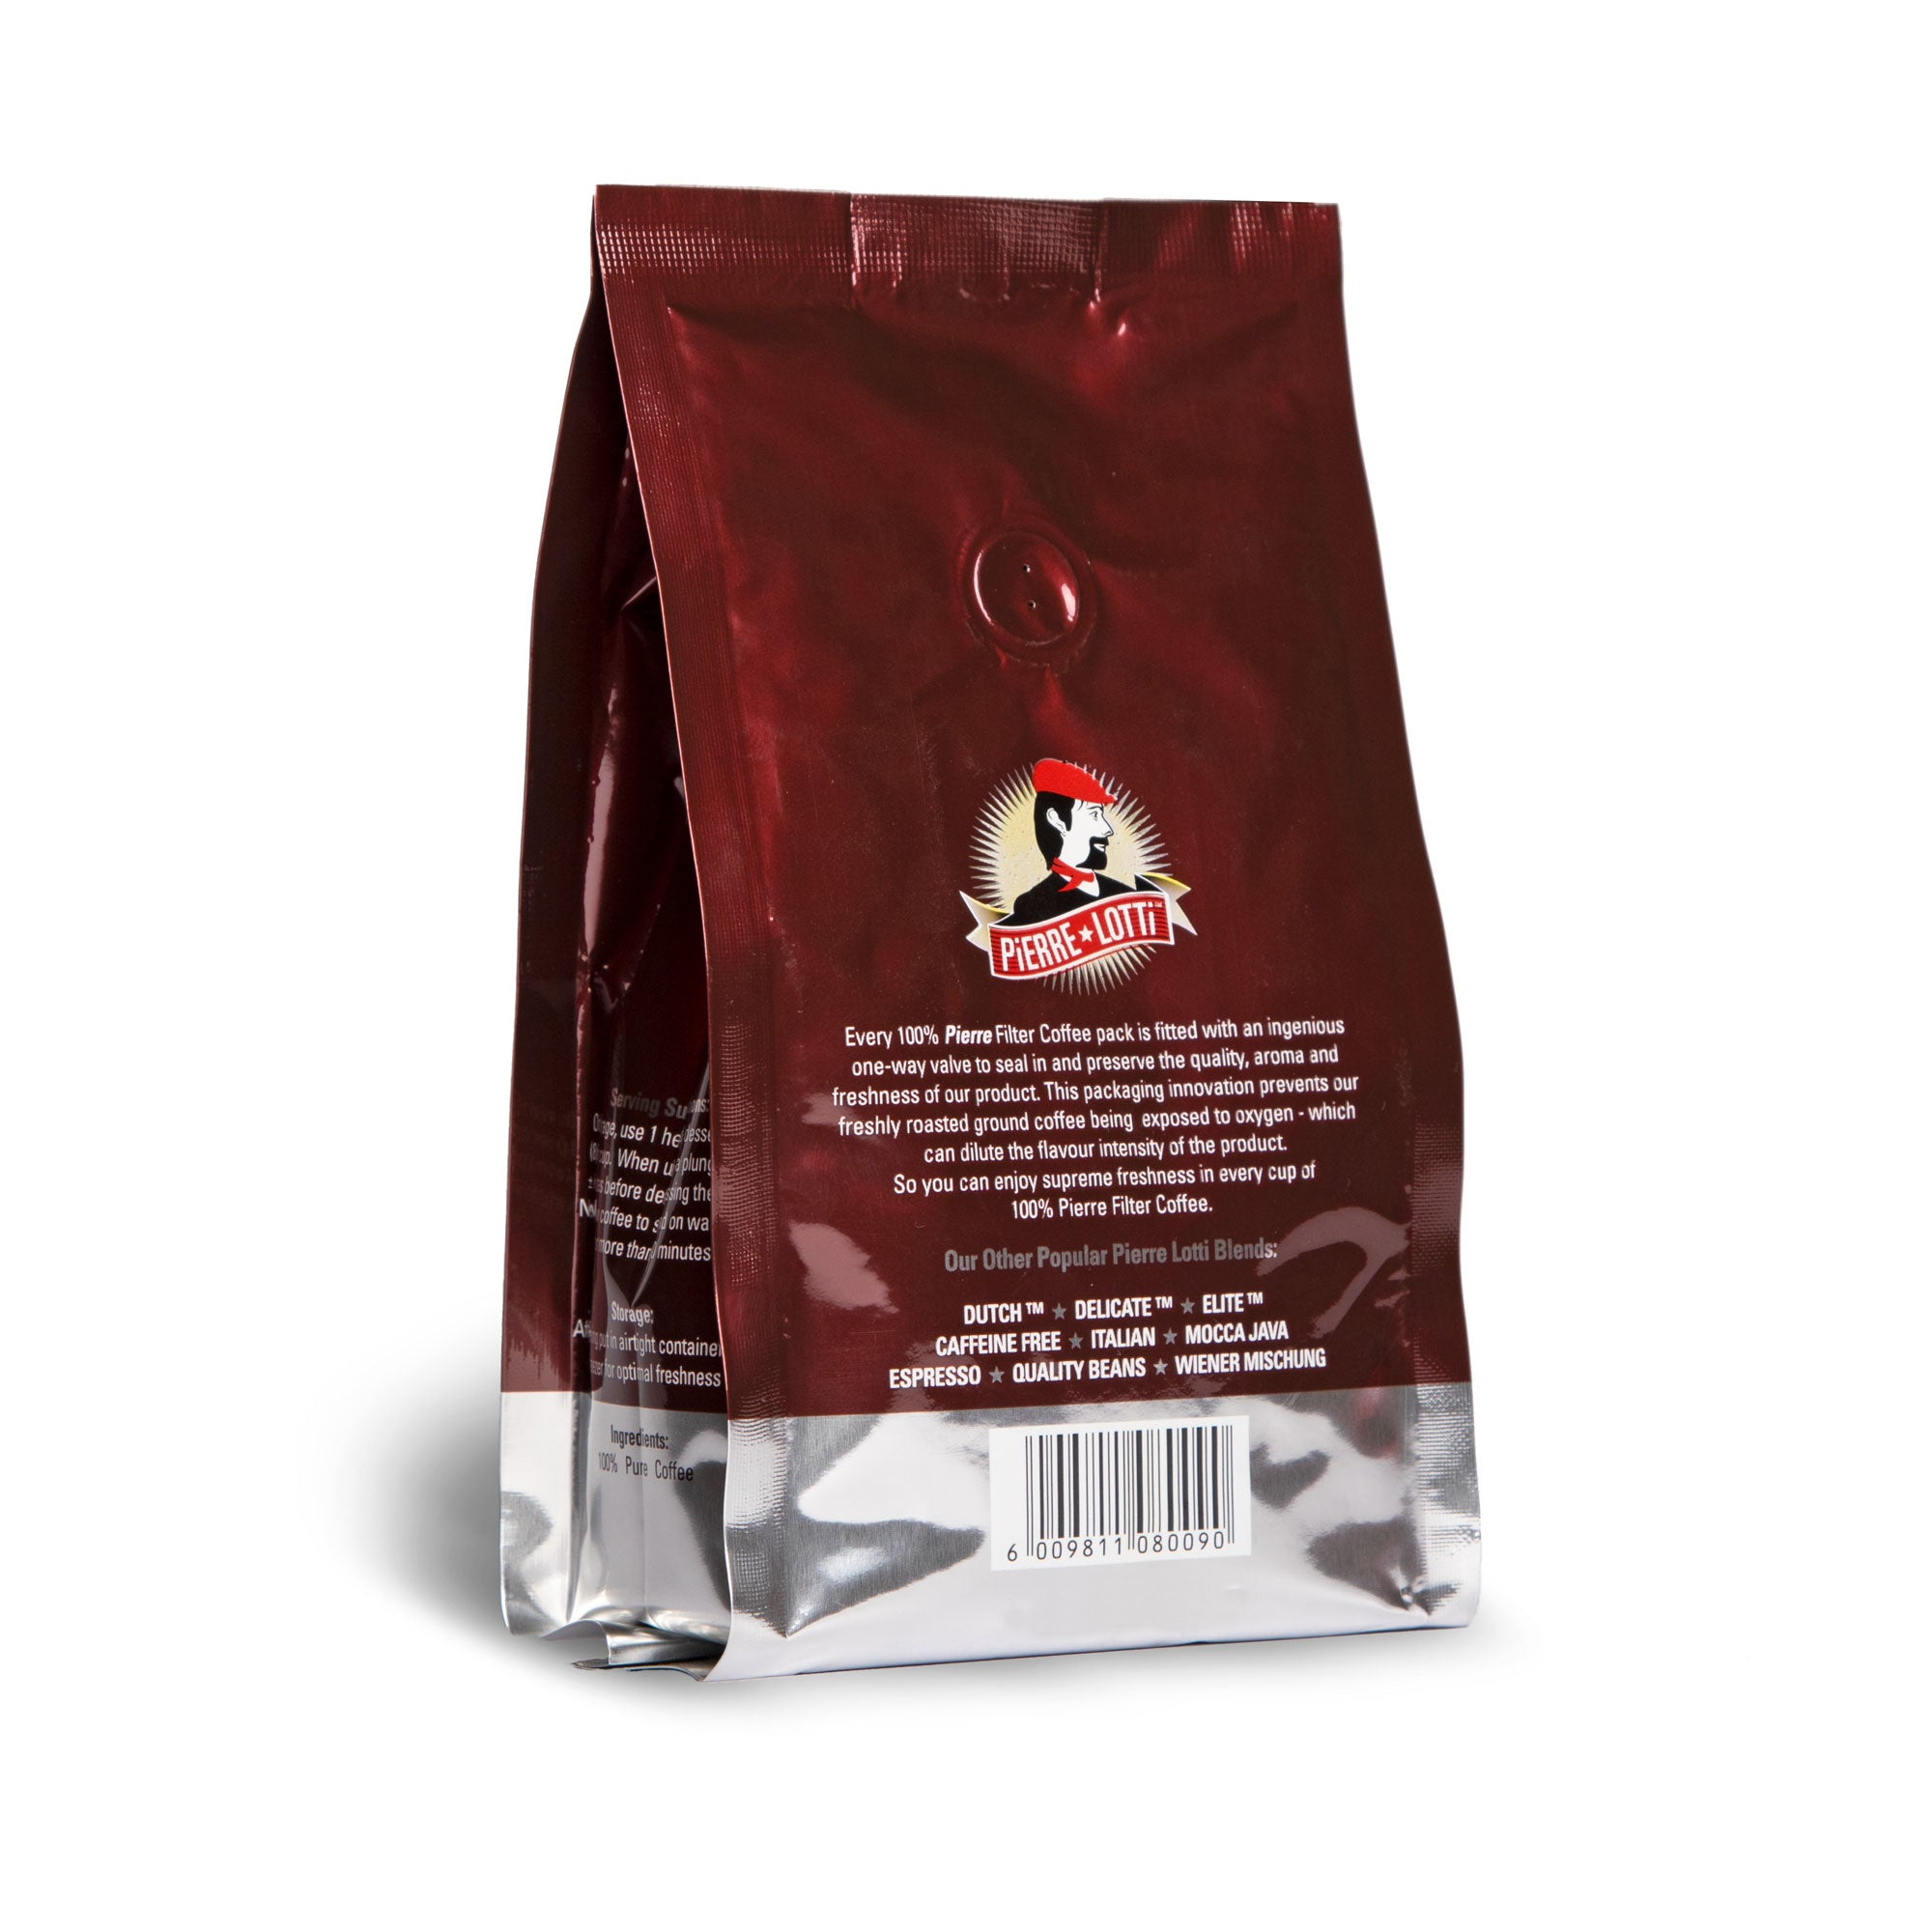 Pierre Lotti Beans Value Pack - Pierre Lotti Coffee